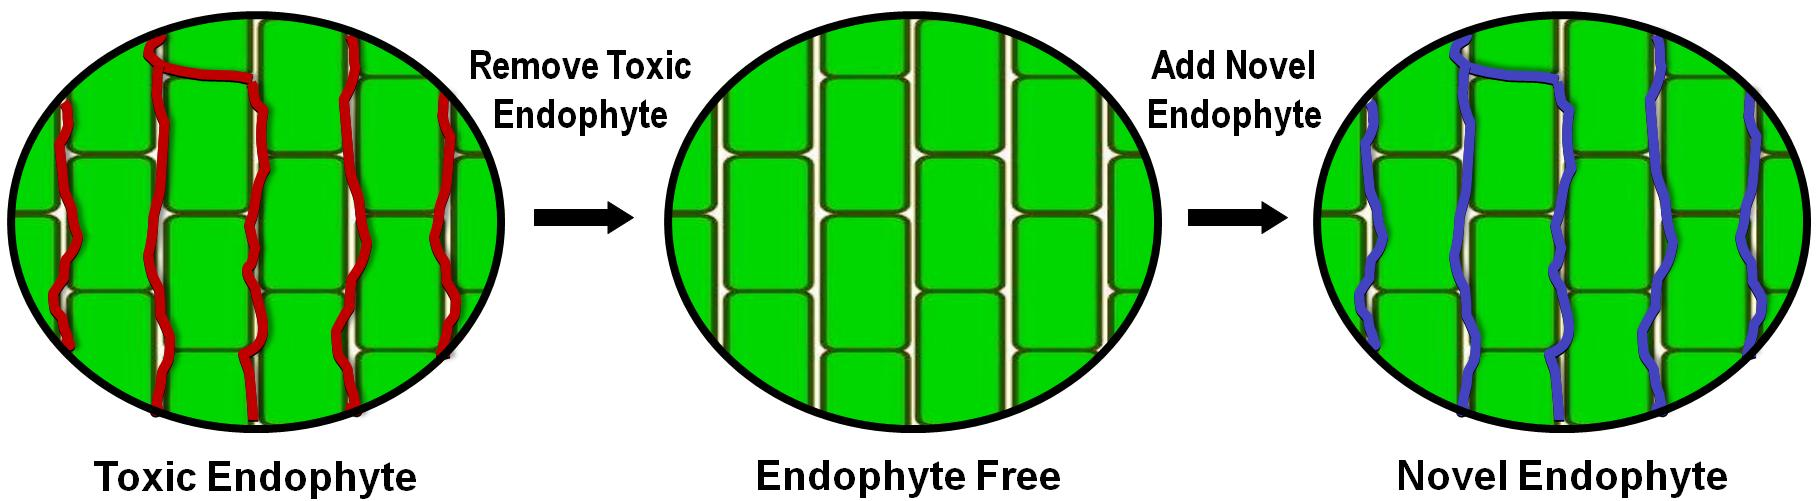 Figure 1. Hyphae of the fungal endophyte grow between the cells (green) of the tall fescue plant. When building a novel endophyte-infected tall fescue, the toxic endophyte (red lines) is removed from the tall fescue plant to create an endophyte-free plant. Then, the novel endophyte (blue lines) is introduced into the plant.